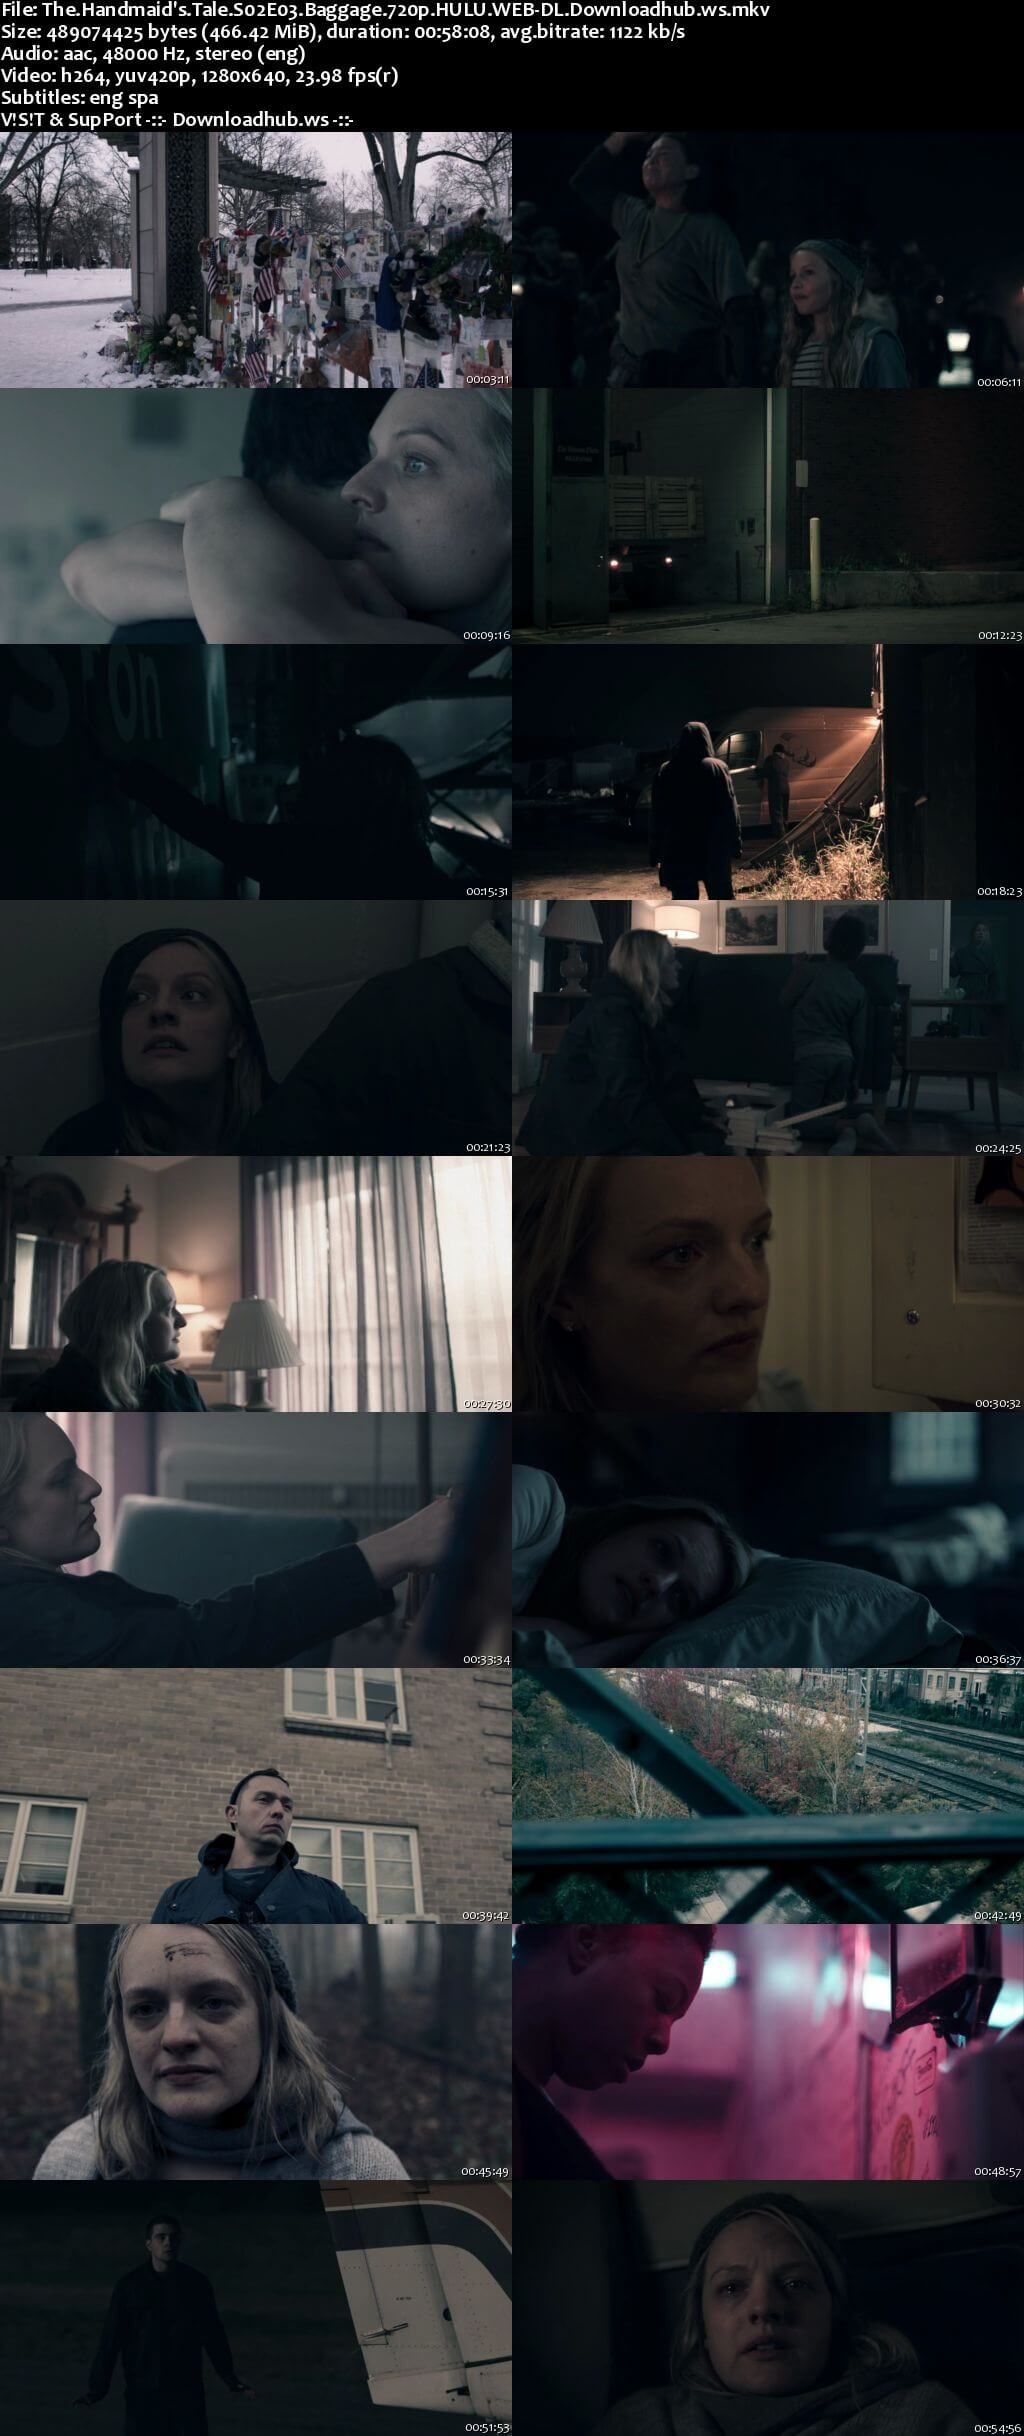 The Handmaids Tale S02E03 450MB HULU WEB-DL 720p x264 ESubs